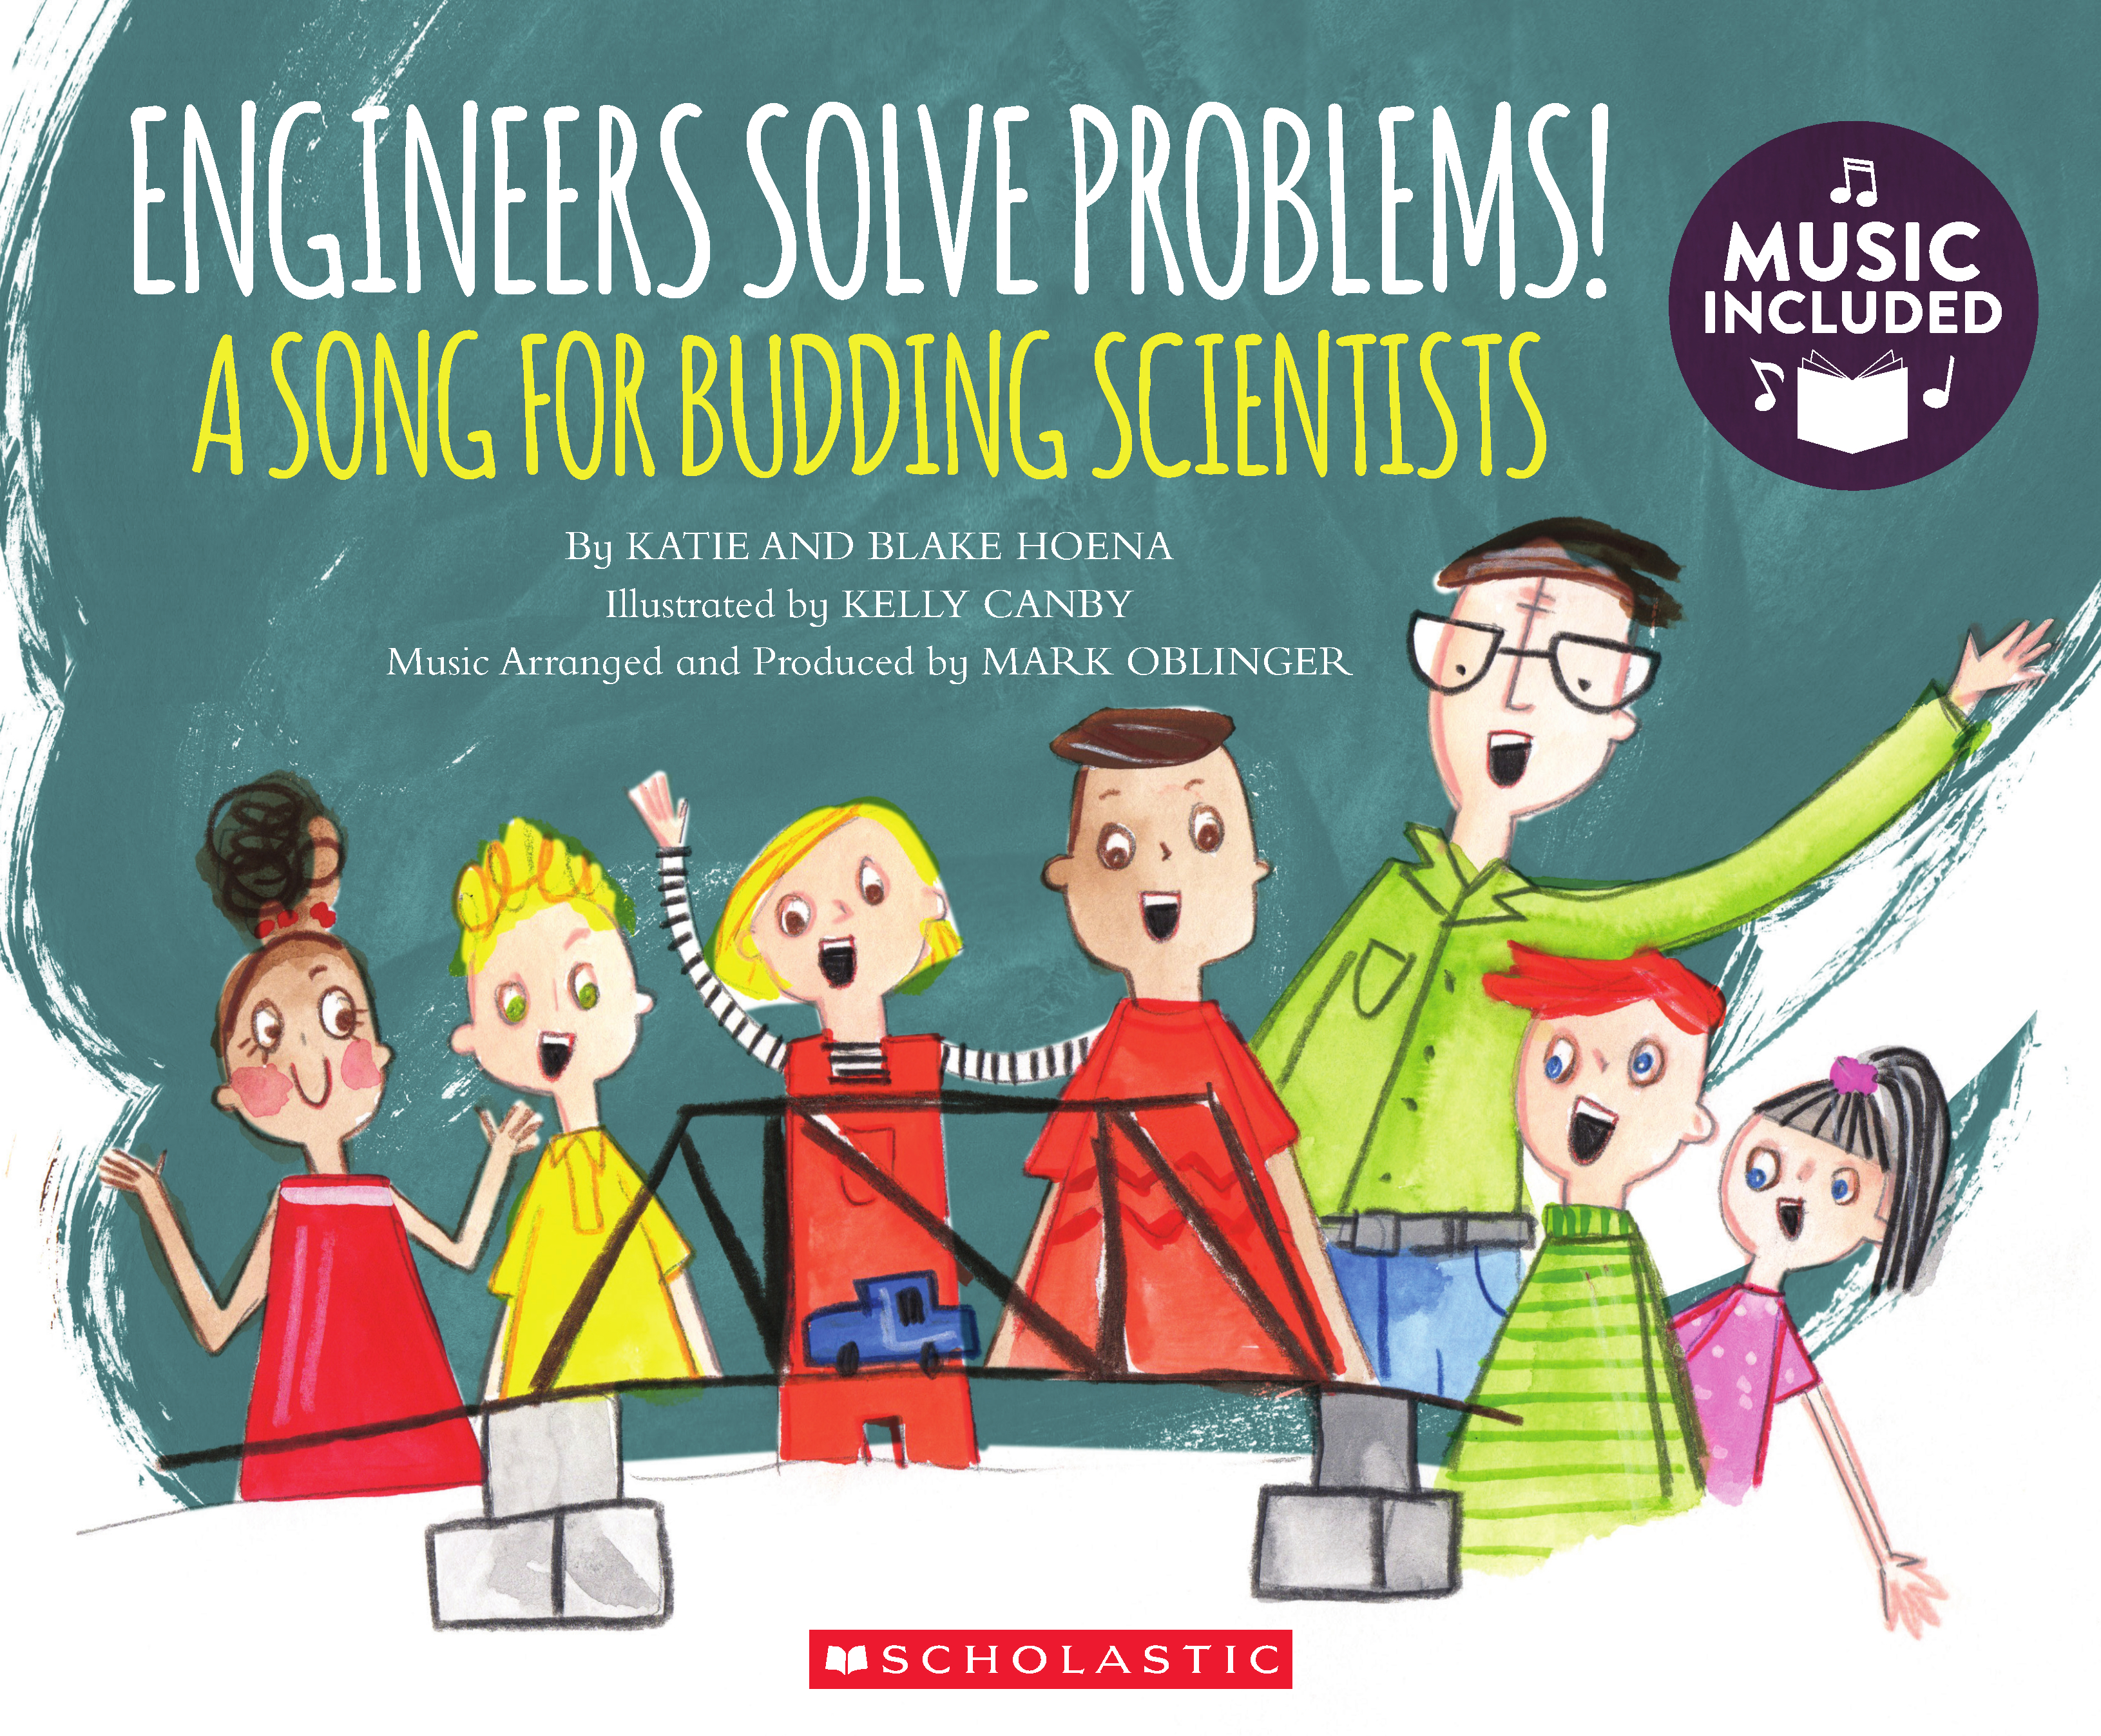 Engineers Solve Problems! A Song For Budding Scientists